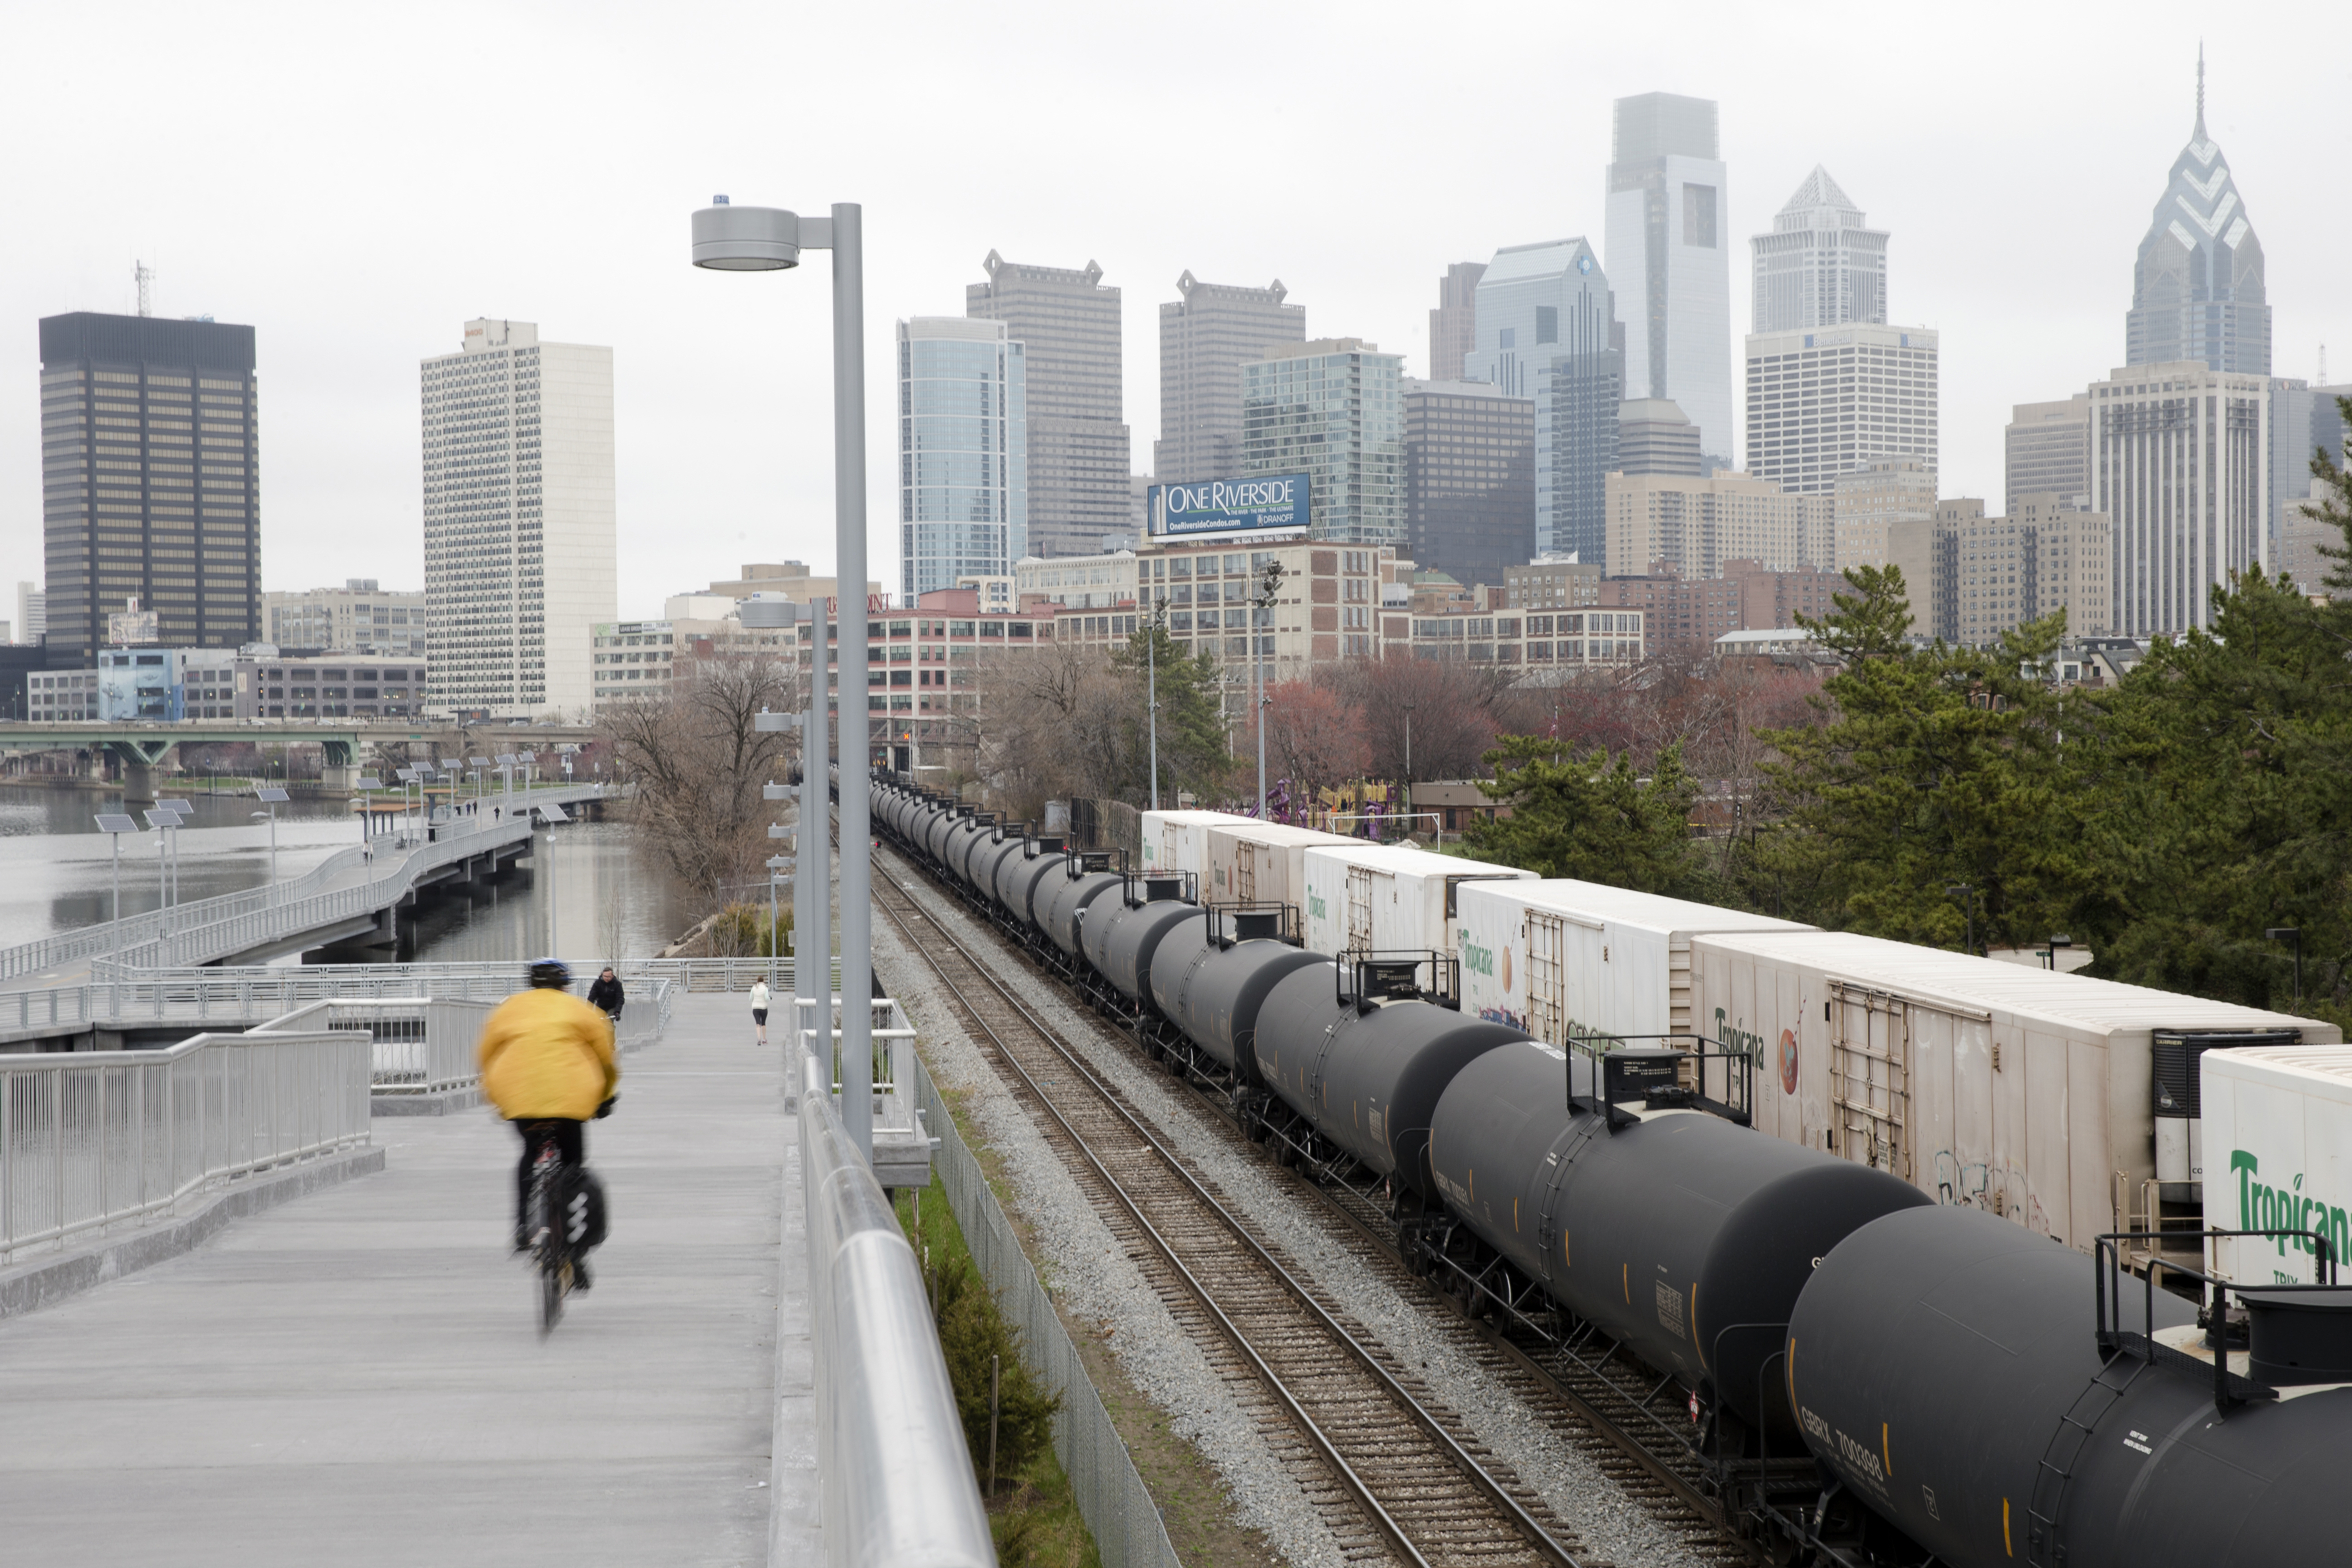 Oil Train Rules-4 In this photo taken April 9, 2015, a cyclist rides by train tank cars with placards indicating petroleum crude oil standing idle on the tracks, in Philadelphia. Rail tank cars that are used to transport most crude oil and many other flammable liquids will have to be built to stronger standards to reduce the risk of catastrophic train crash and fire under a series of new rules unveiled Friday by U.S. and Canadian transportation officials.